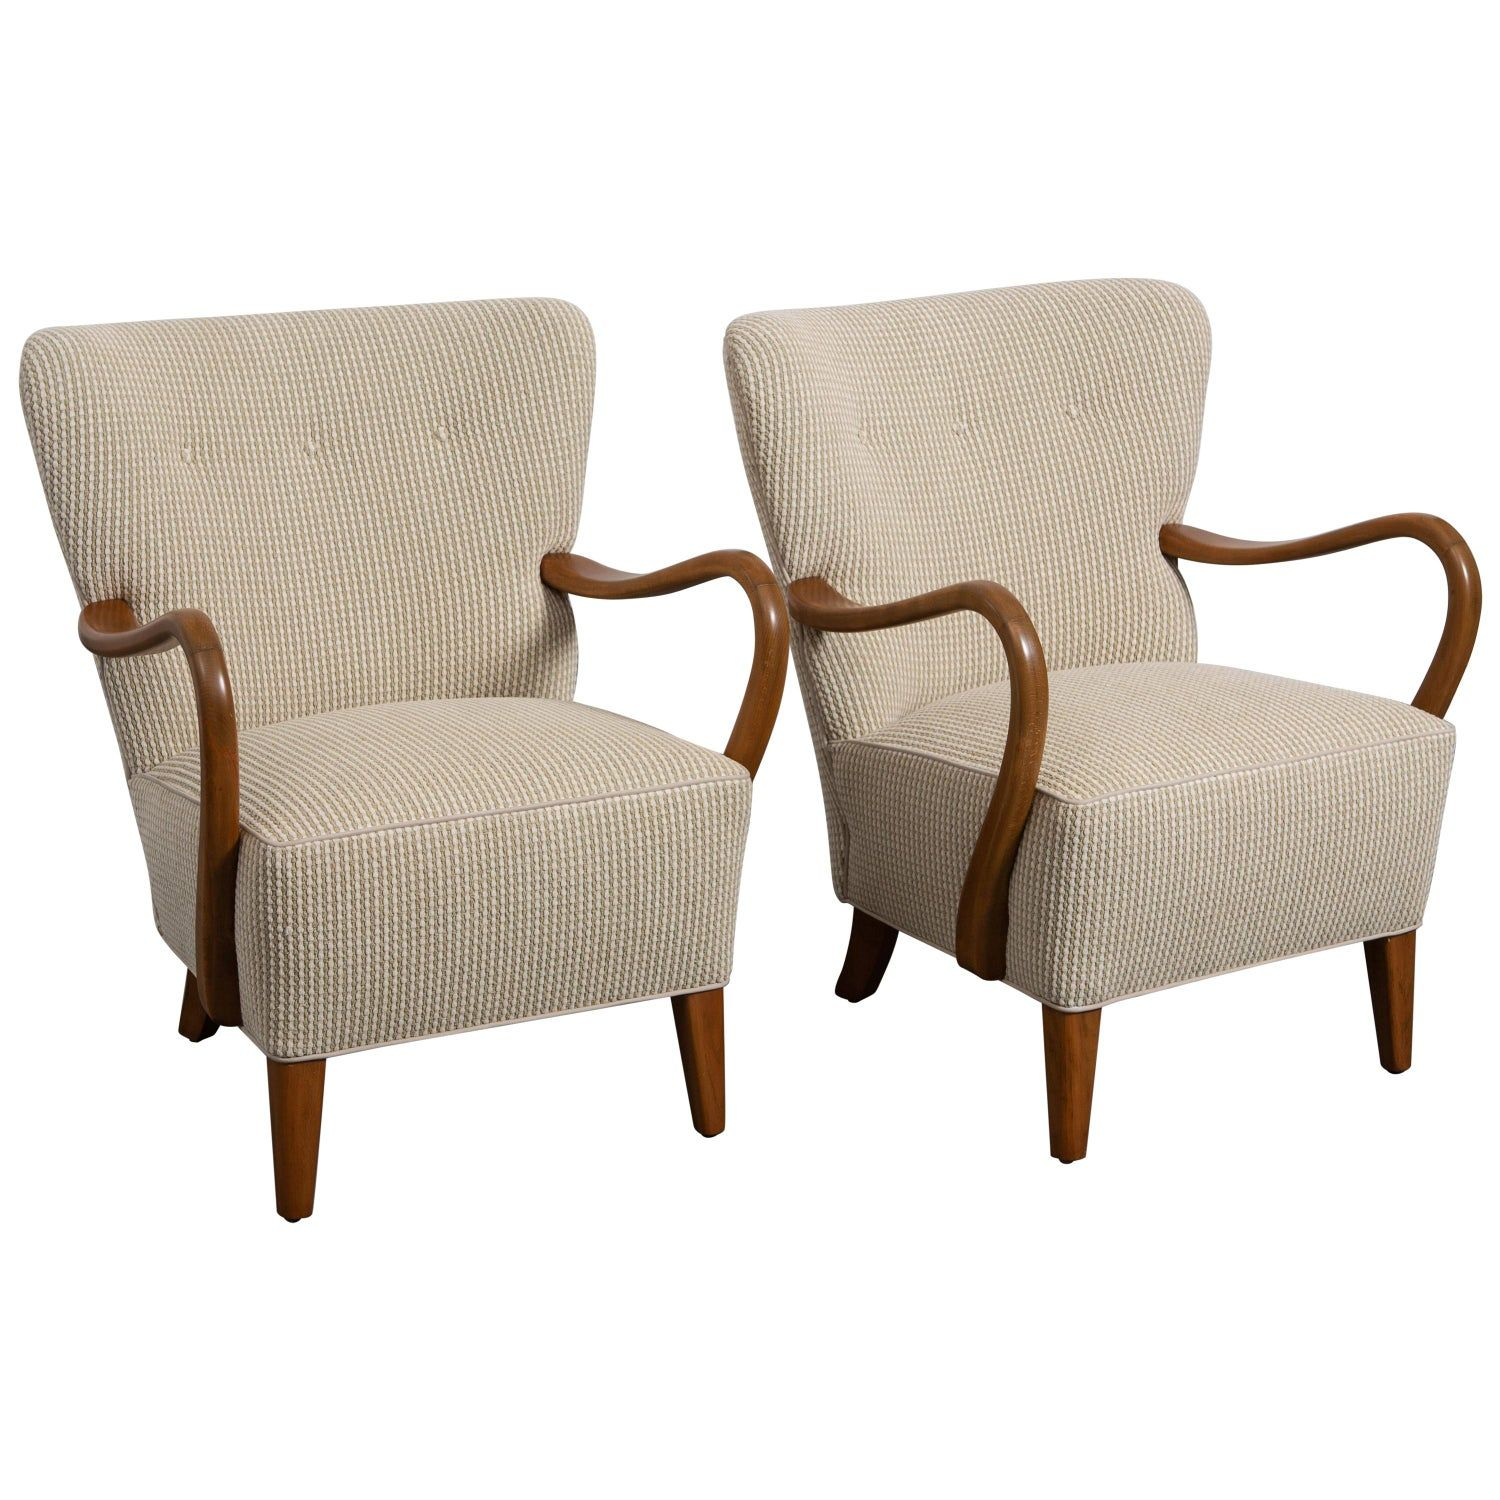 Pair of Midcentury Curved Wood Armchairs Wood arm chair